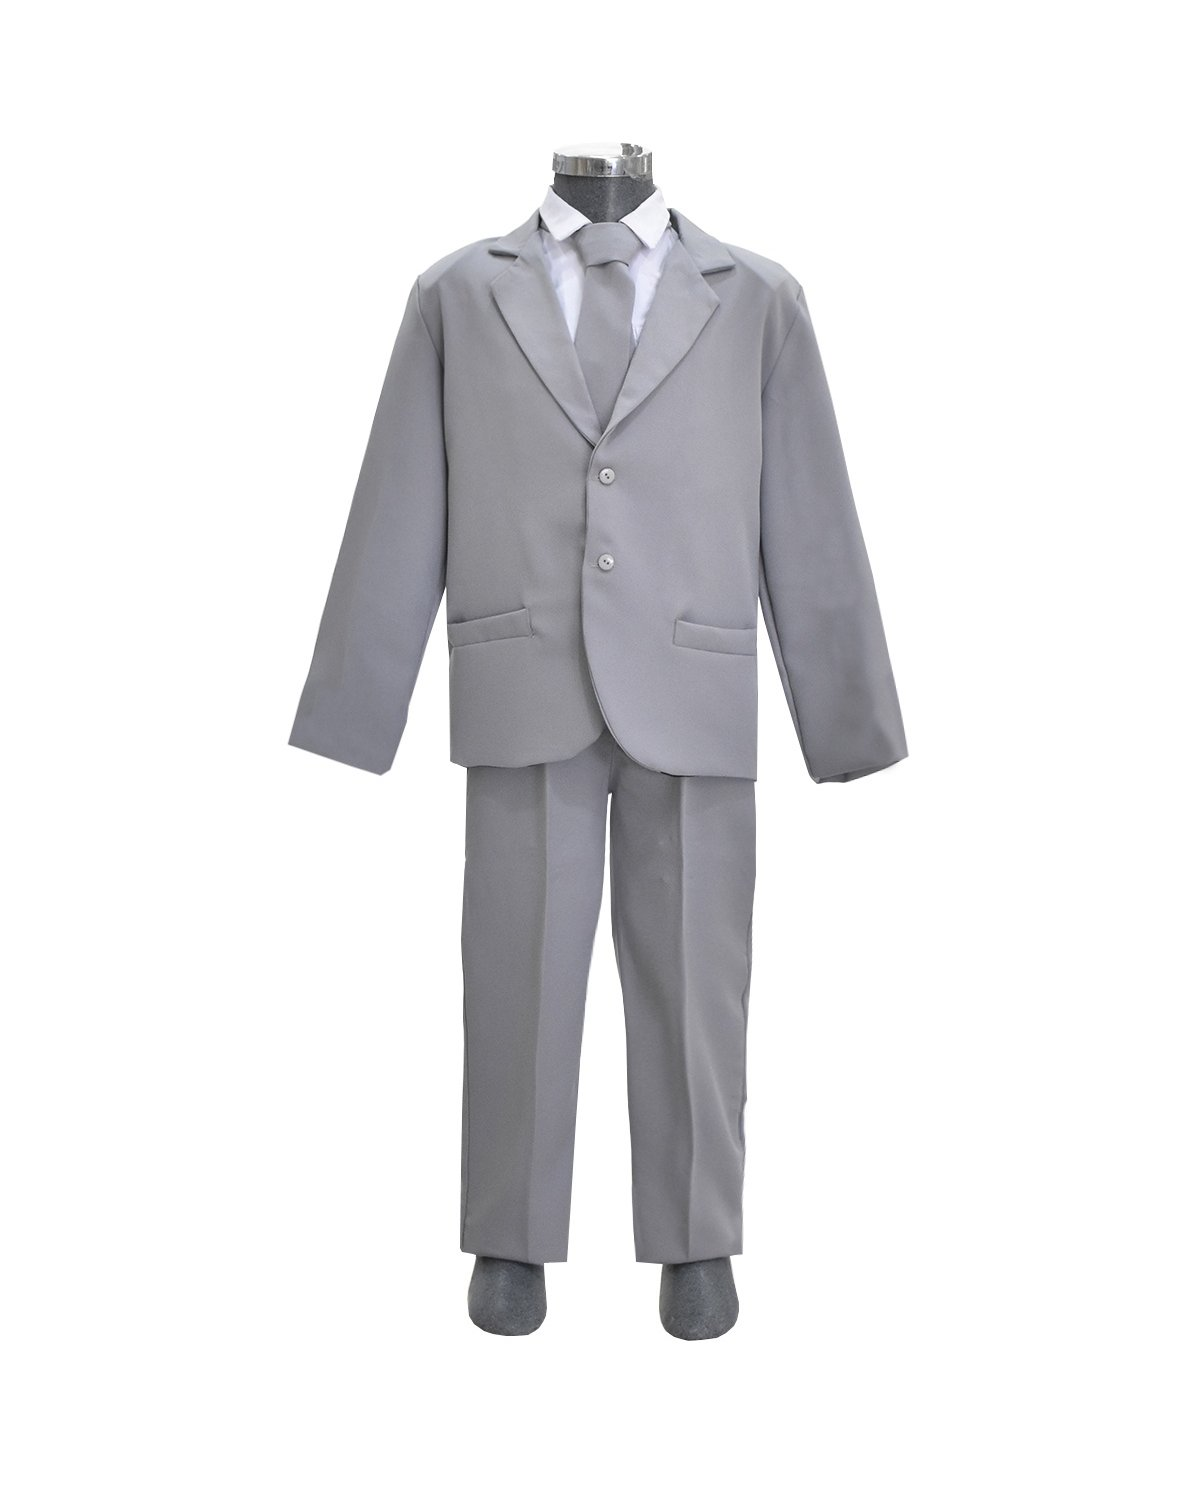 Suits for Children First Communion Model Oliver